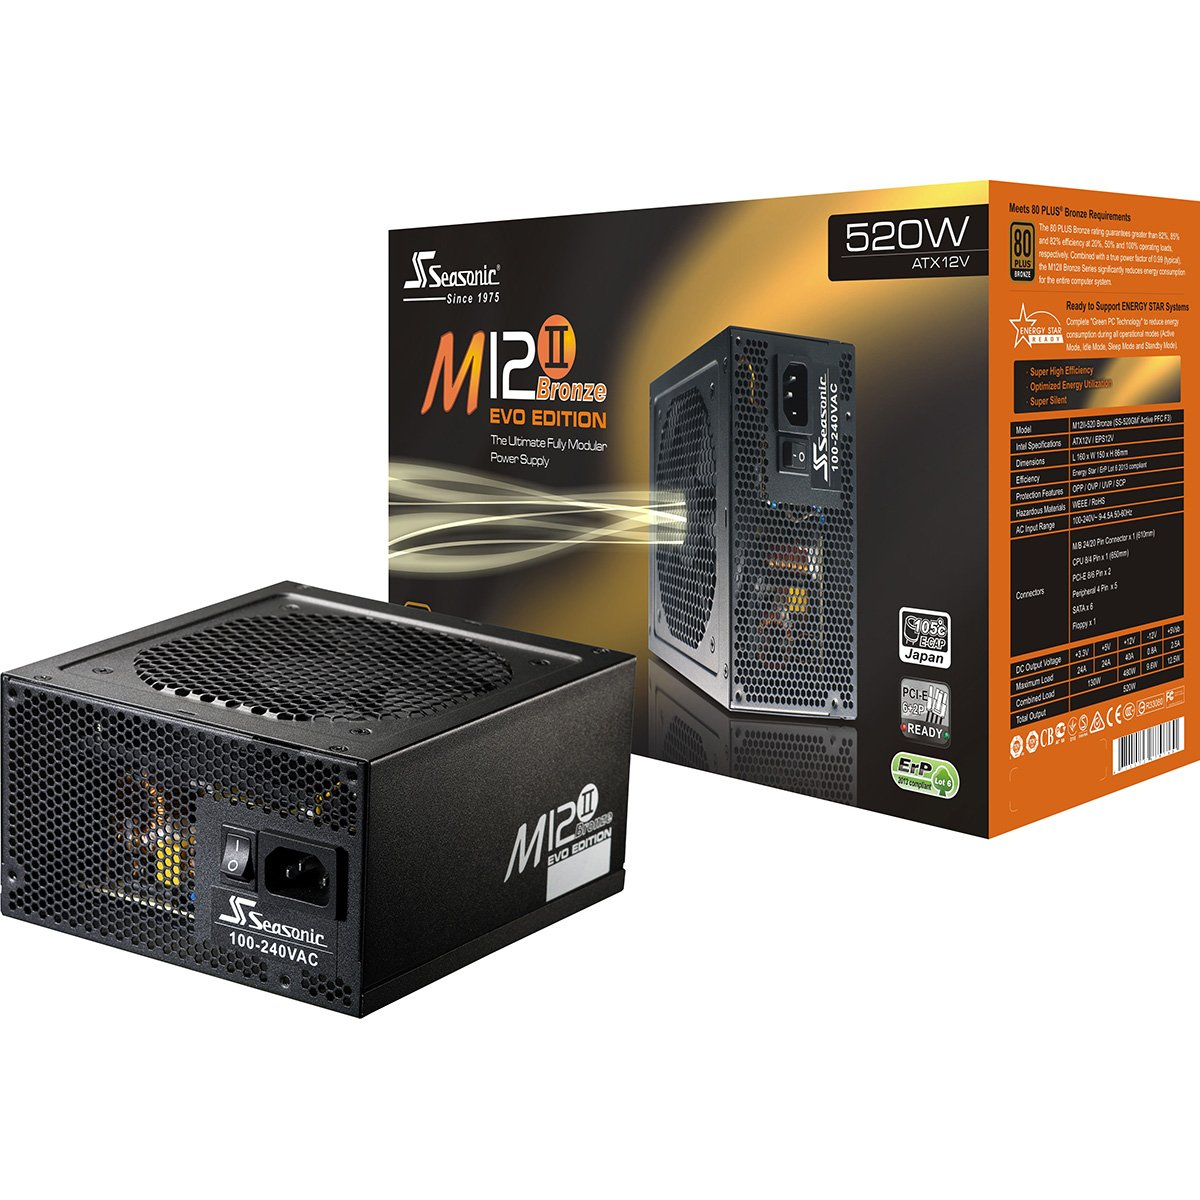 Buy Seasonic M12ii Evo Series 520w Modular Power Supply Guitar Electronics Wiring Overclockers Australia Forums With 80 Bronze Certification Ss 520gm2 Online At Low Prices In India